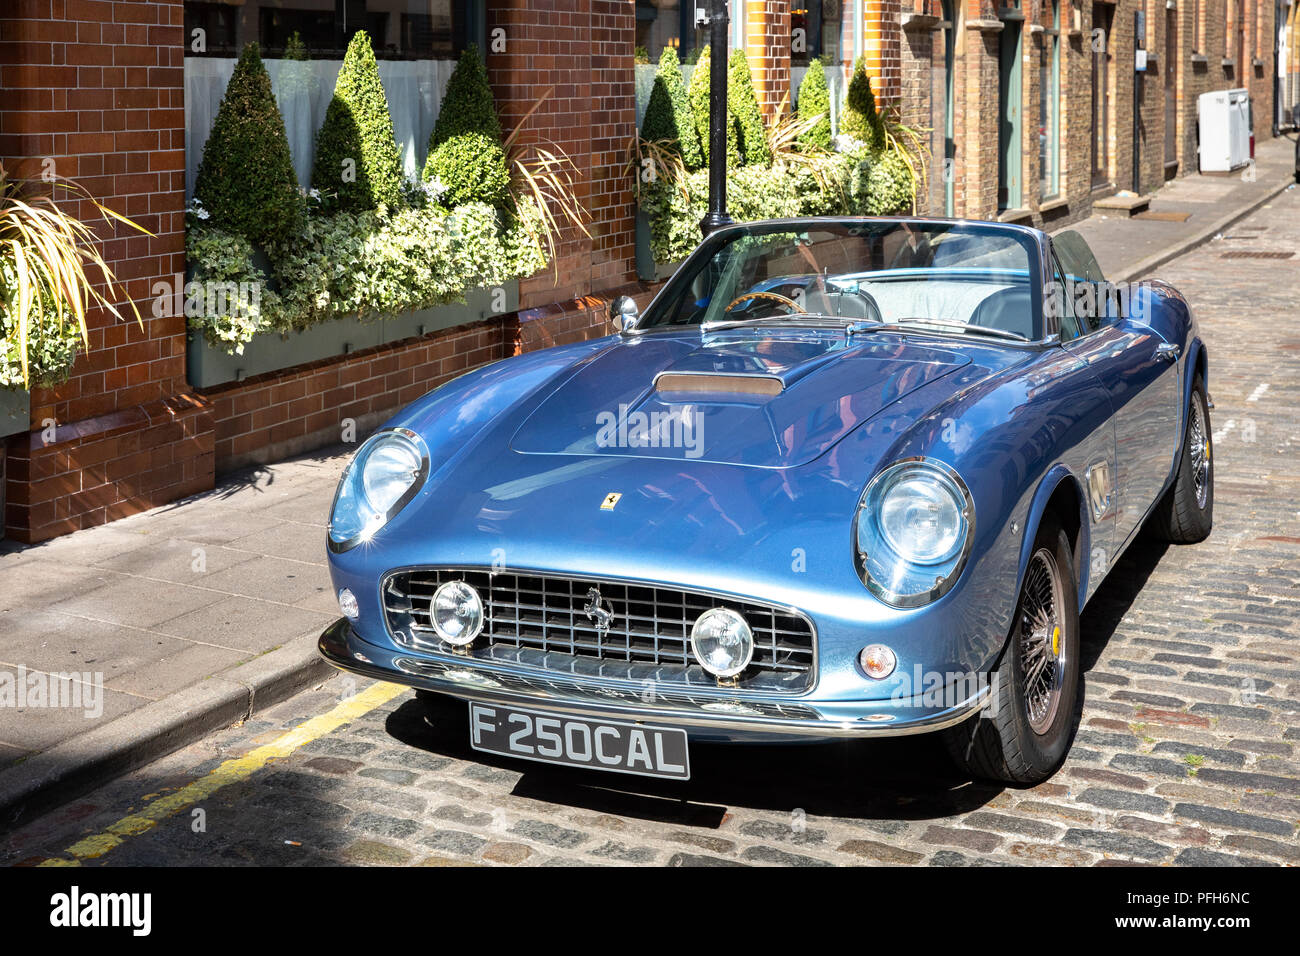 Vintage Ferrari convertible car. - Stock Image